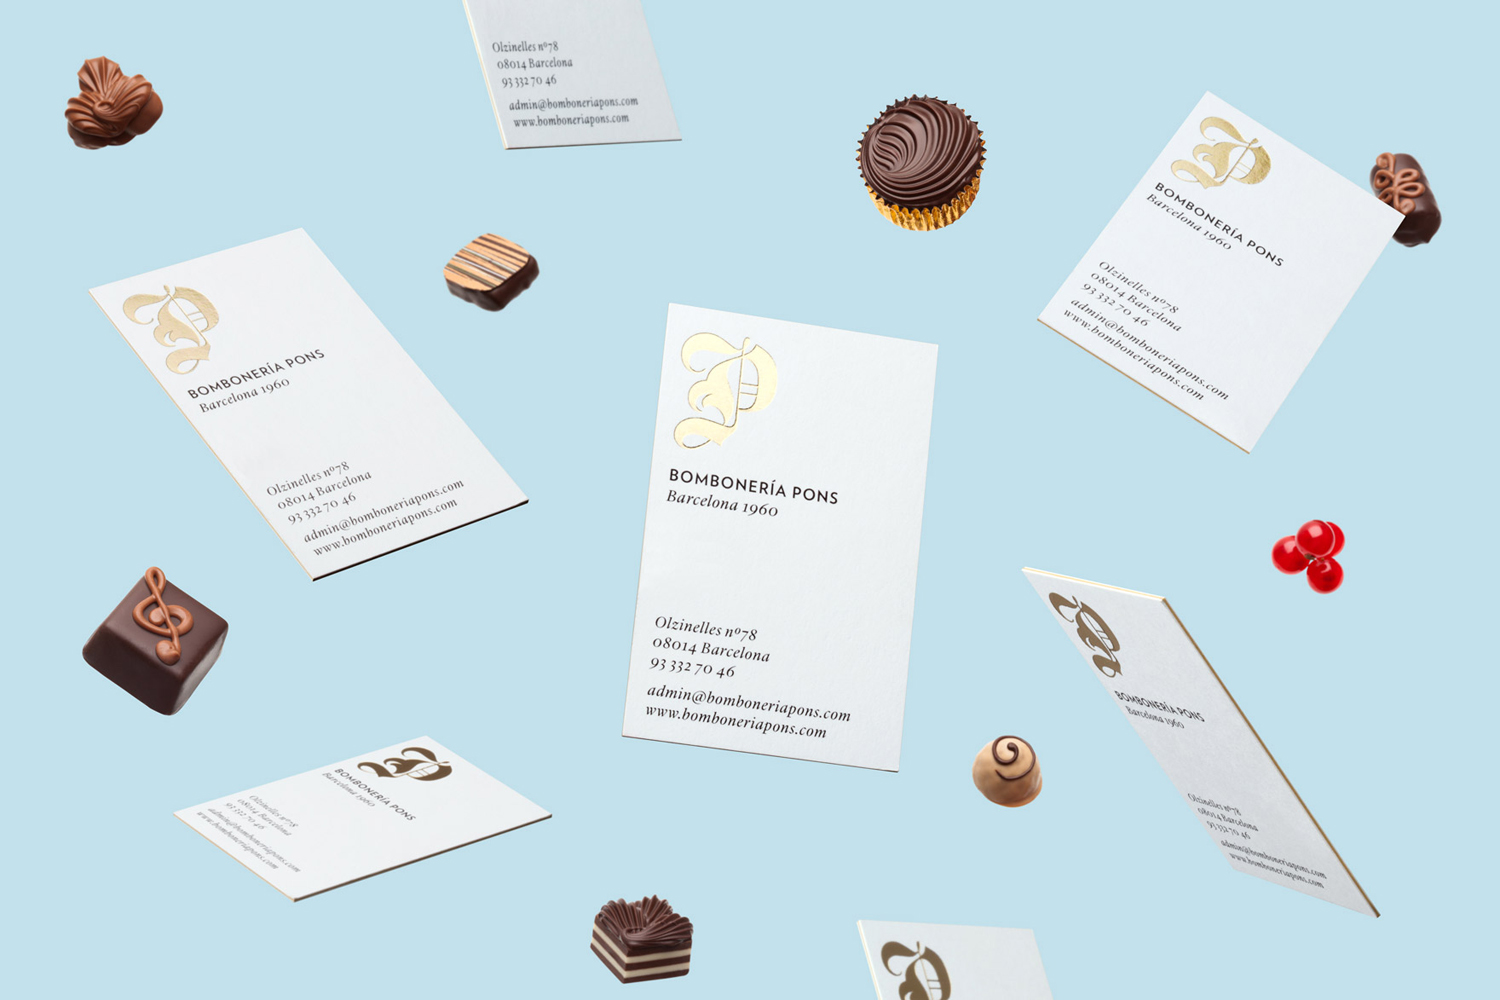 Gold foiled business cards for Bombonería Pons designed by Mucho